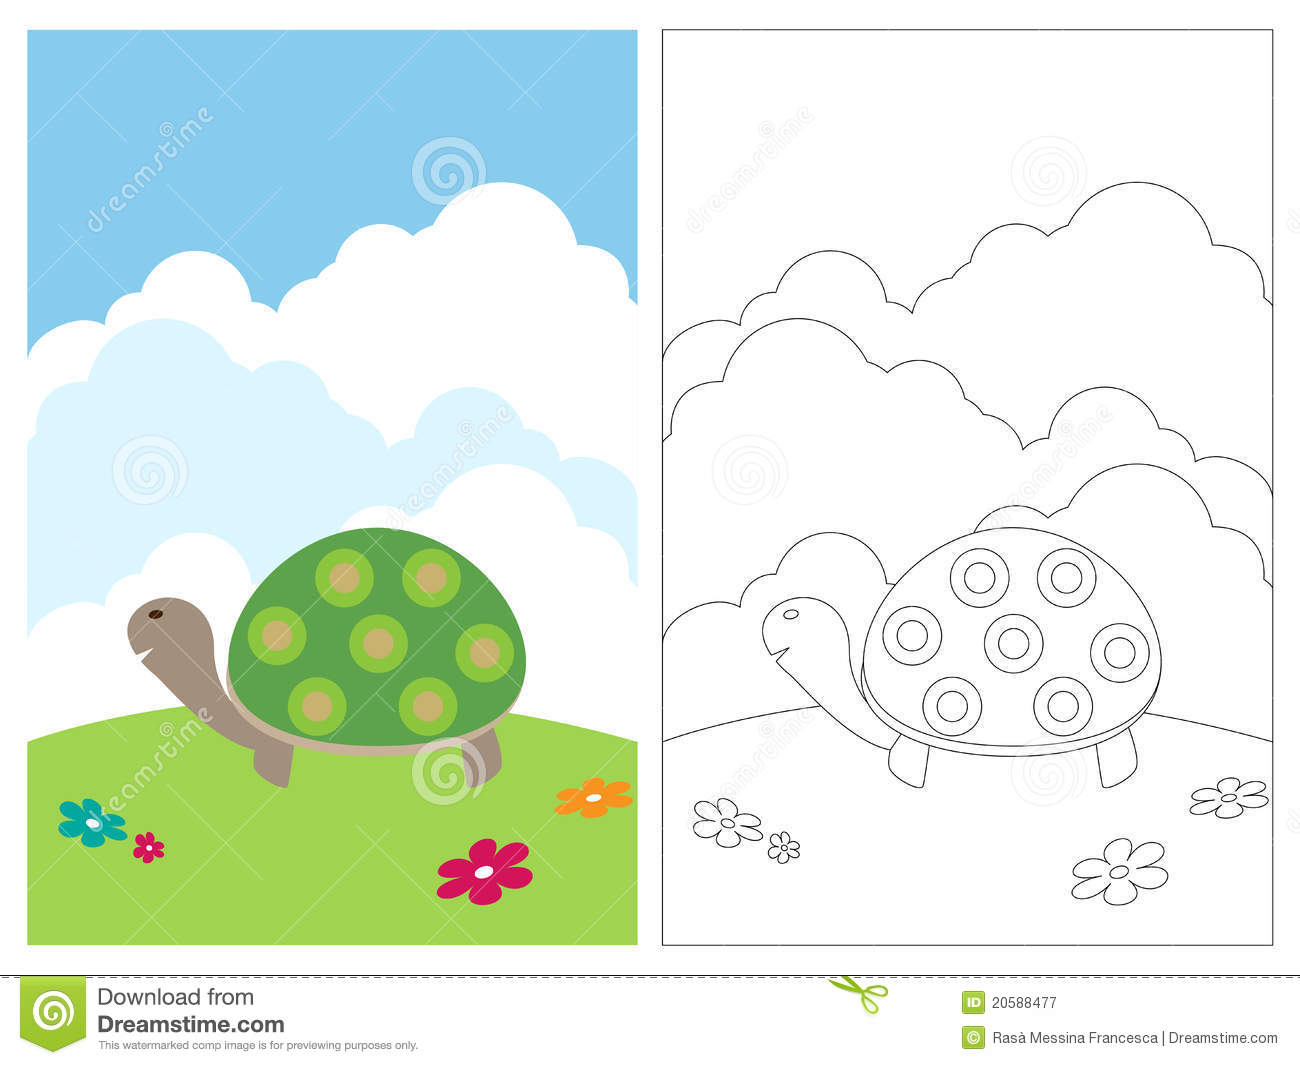 coloring page book turtle royalty free stock photography image